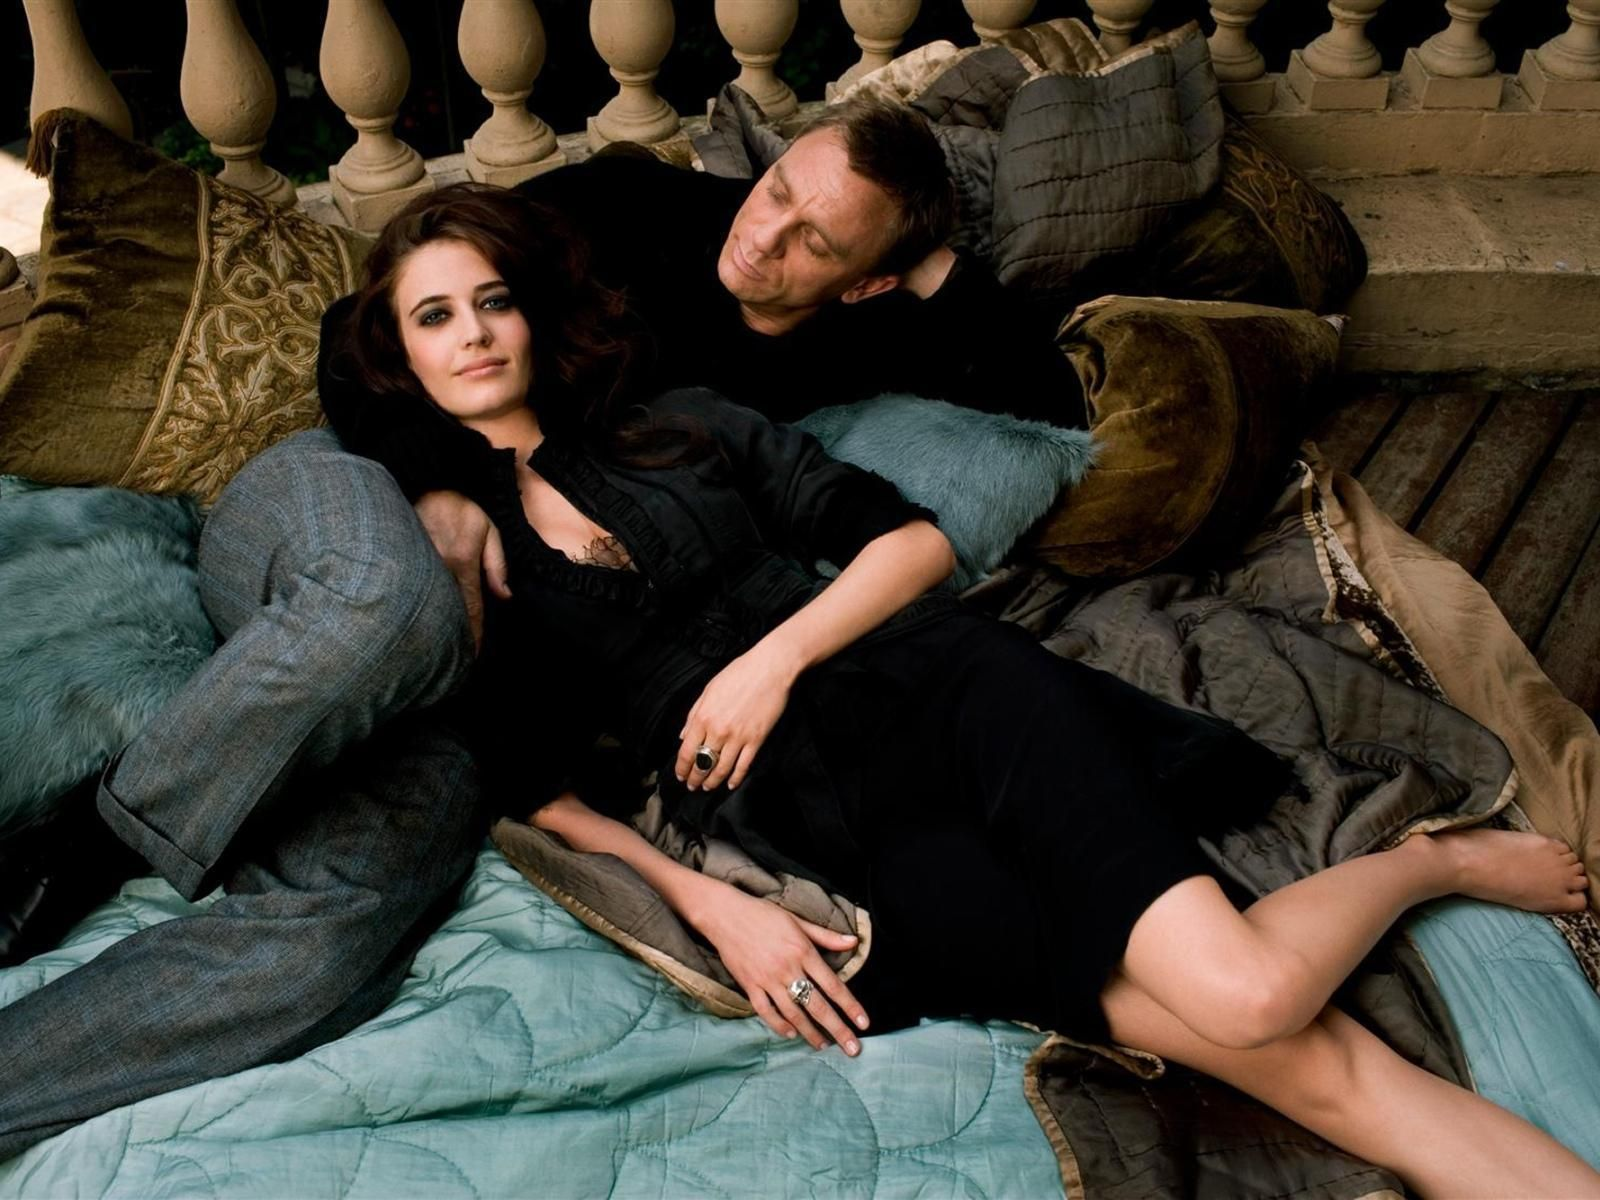 vesper girls Bond and his casino royale bond girl: more equal than ever  casino royale  made a dramatic break with bond tradition in making vesper.